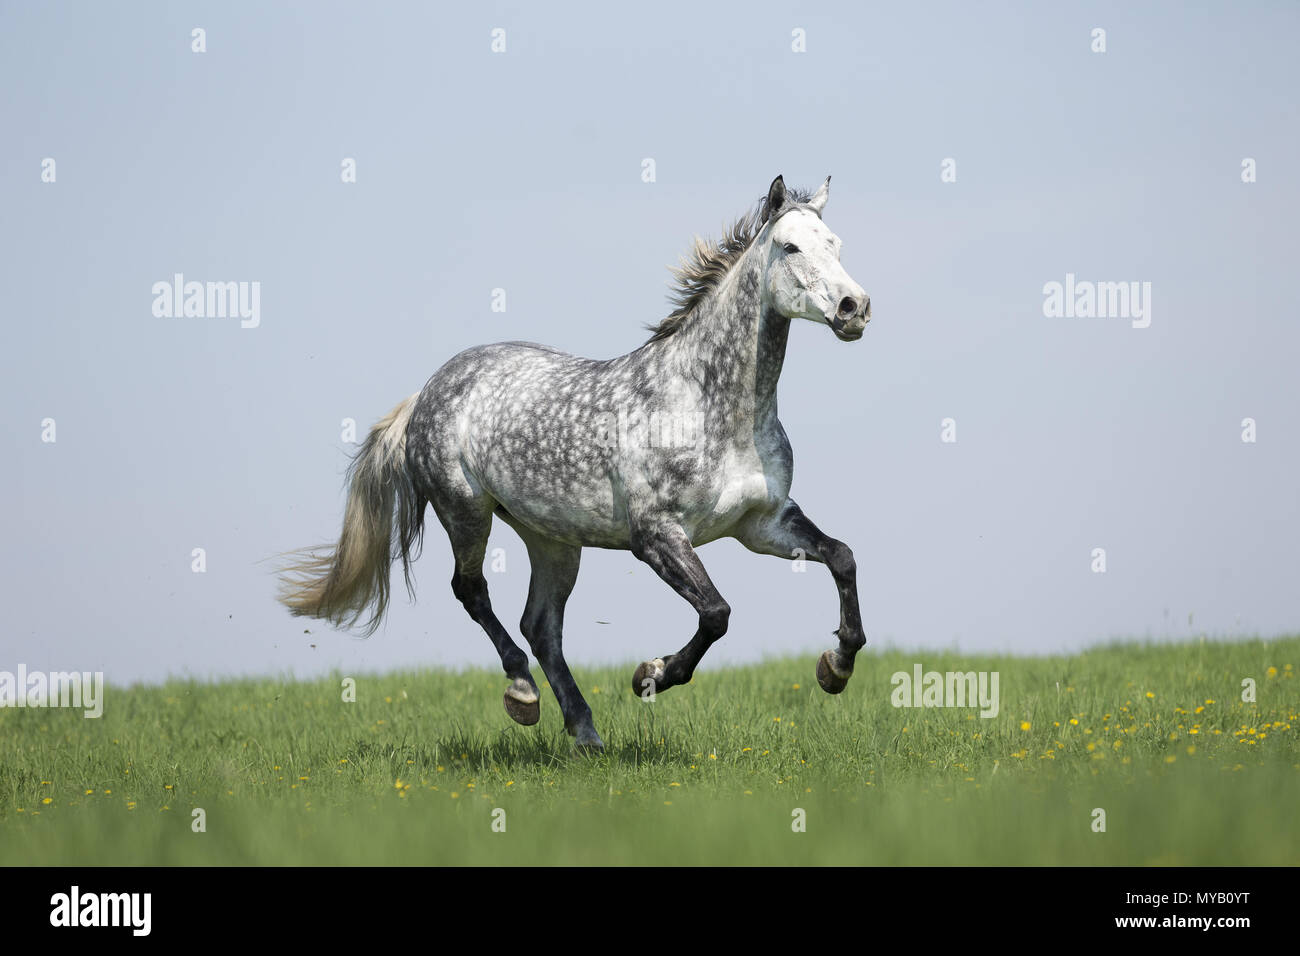 Hanoverian Horse. Dappled gray mare galloping on a meadow. Germany - Stock Image